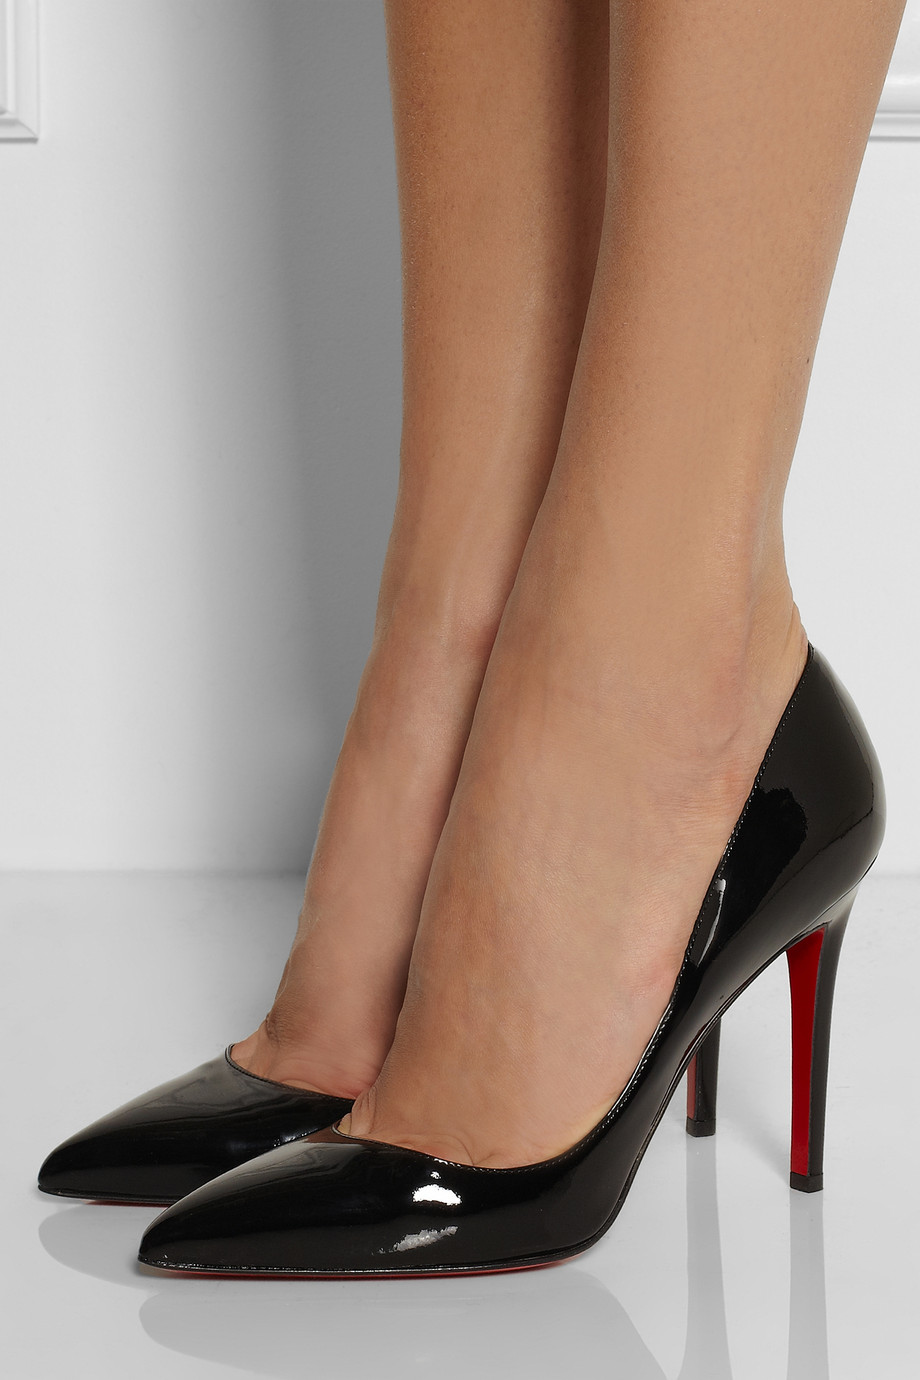 Lyst Christian Louboutin The Pigalle 100 Patent Leather